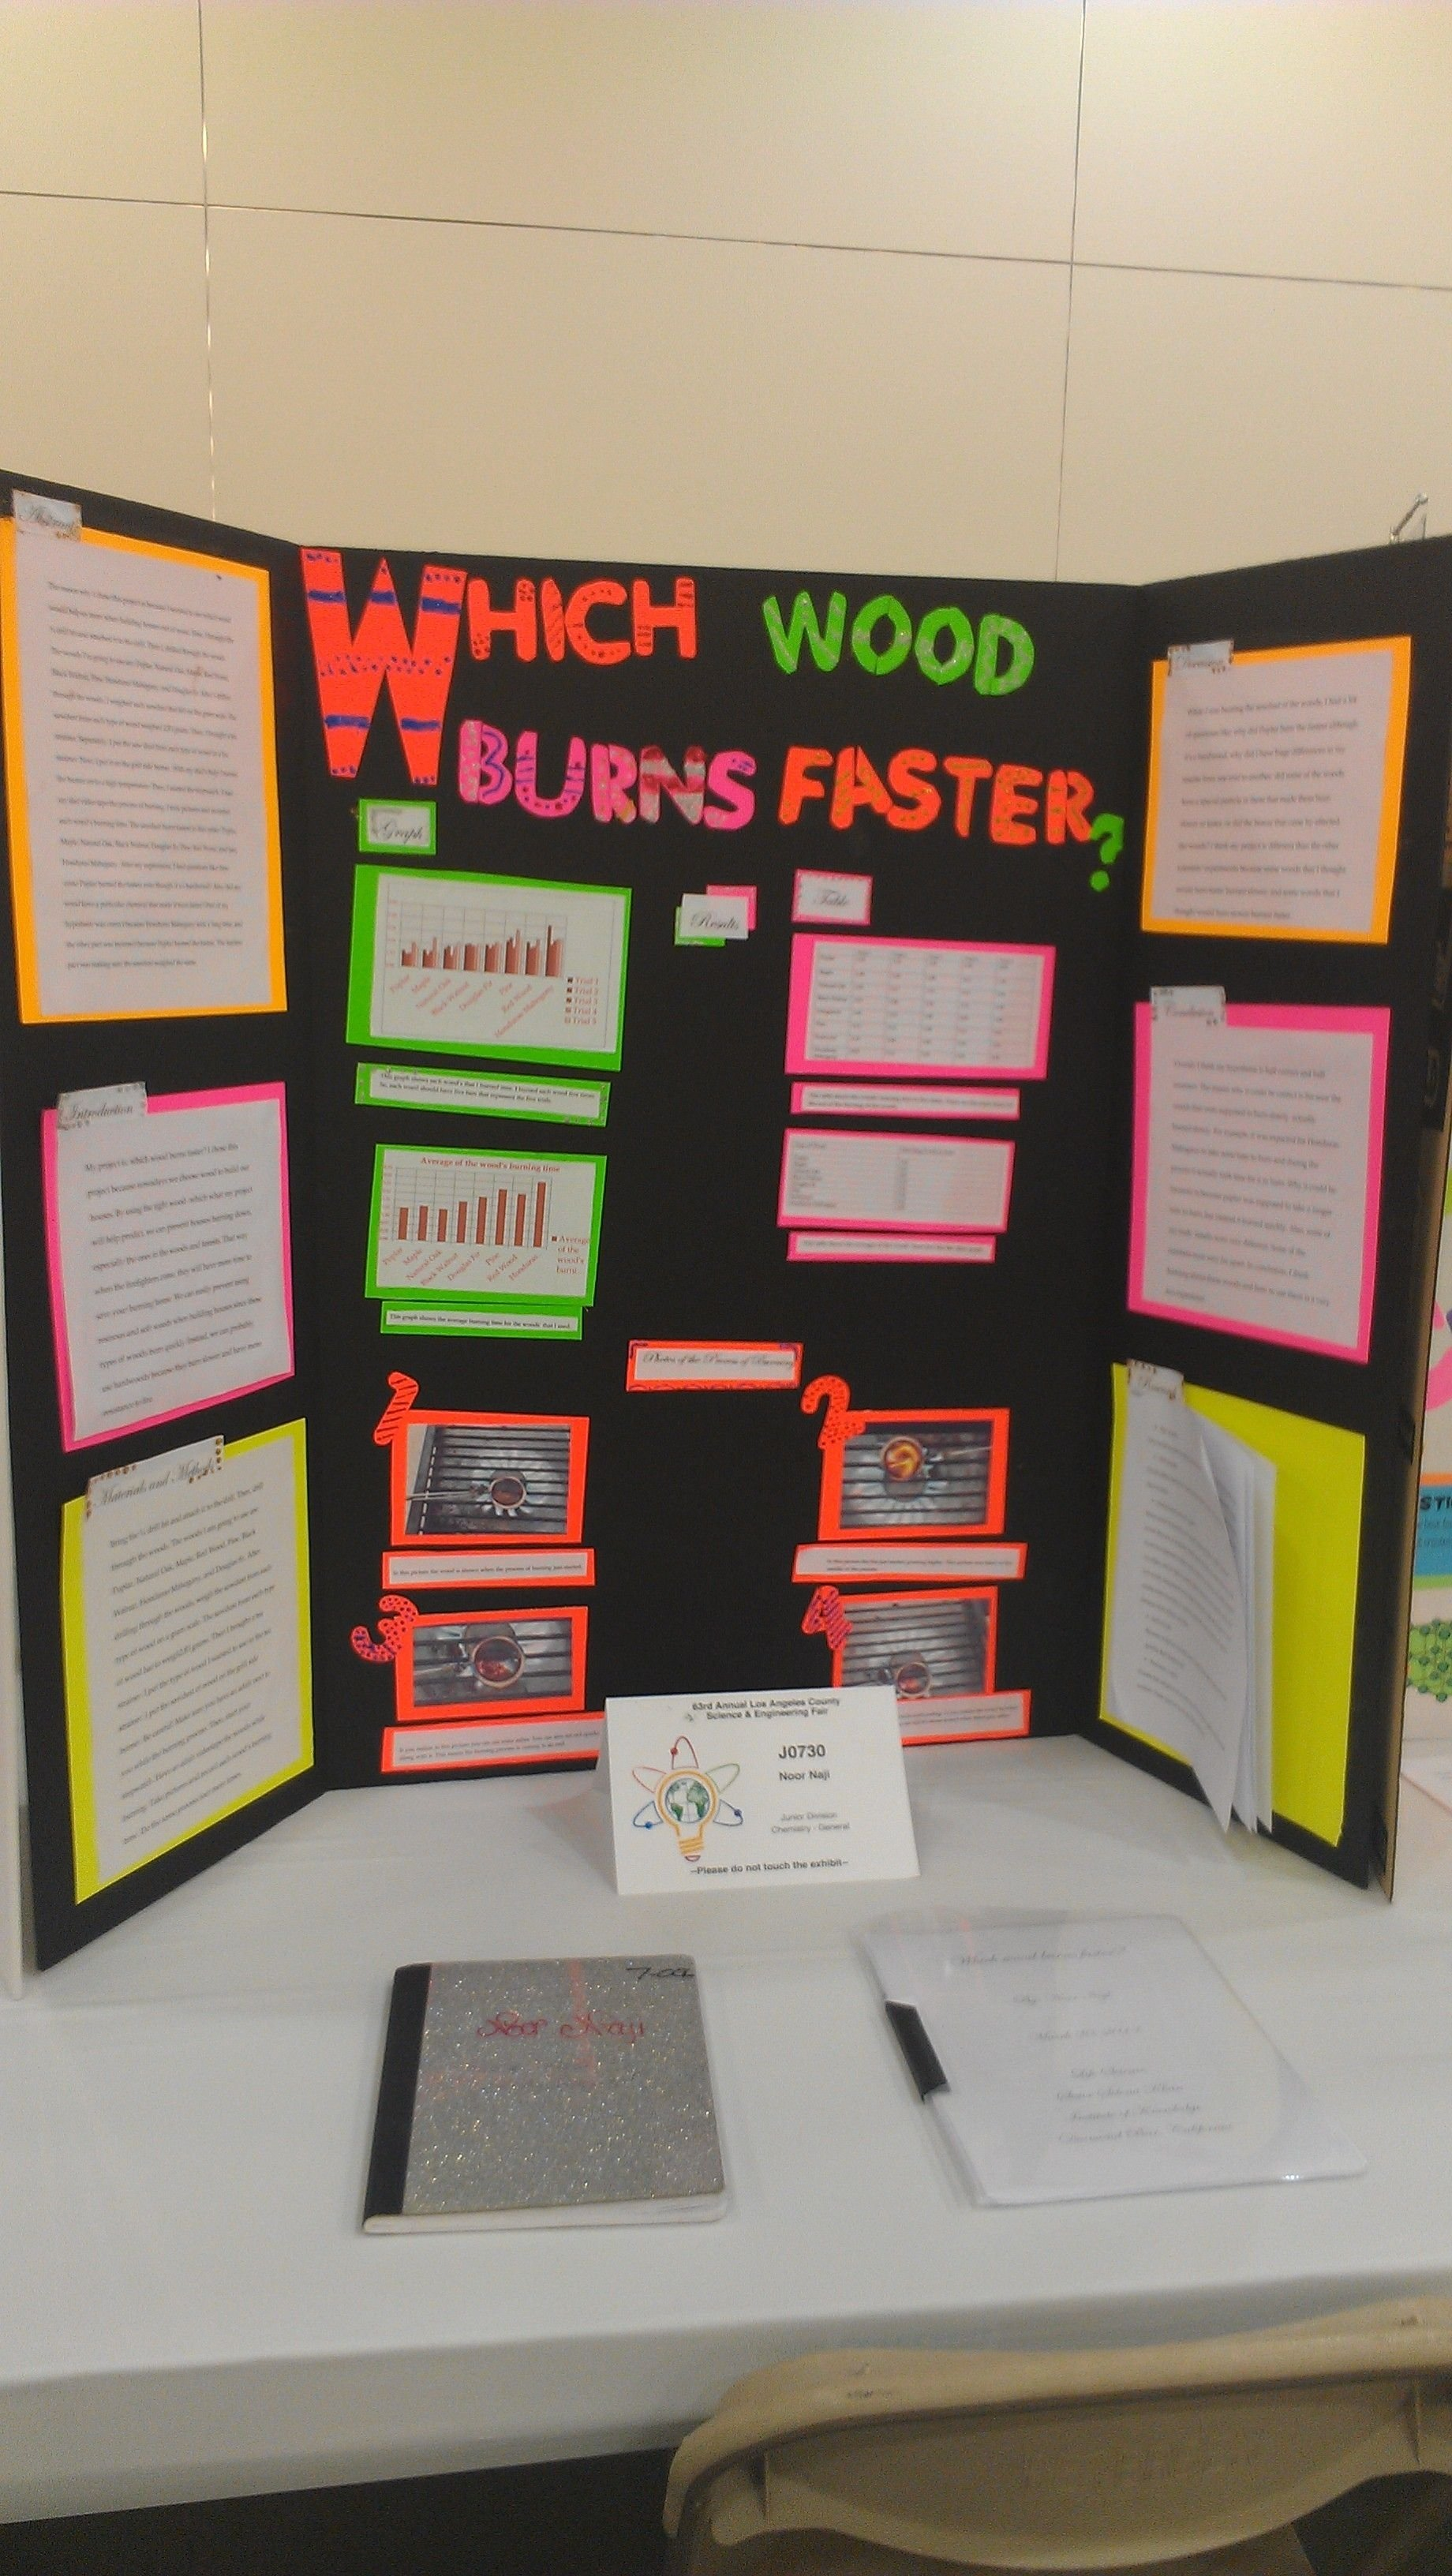 10 Most Popular 7Th Grade Science Fair Project Ideas 7th grade science fair projectnoor naji 2013 la county science 9 2020